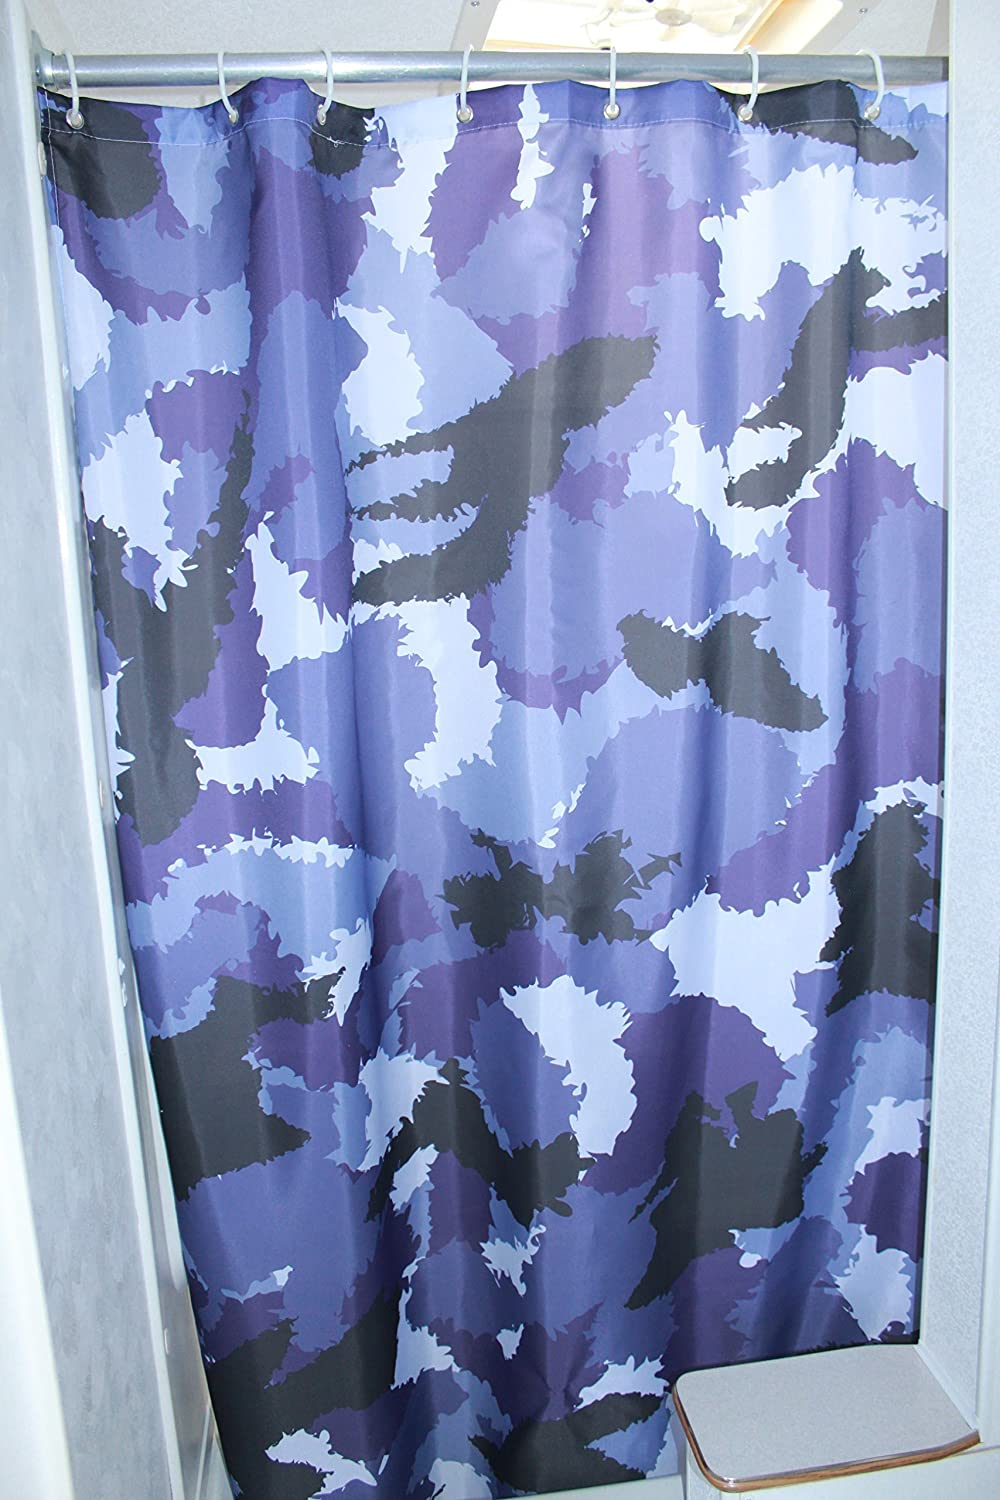 Solid Elements RV Shower Camo Curtain Accessories Gear for Camper Trailer Camping Bathroom-Shorter and Narrow Shower Sliding Camouflage Cloth Curtain with Hooks Set 47x64 (Blue)